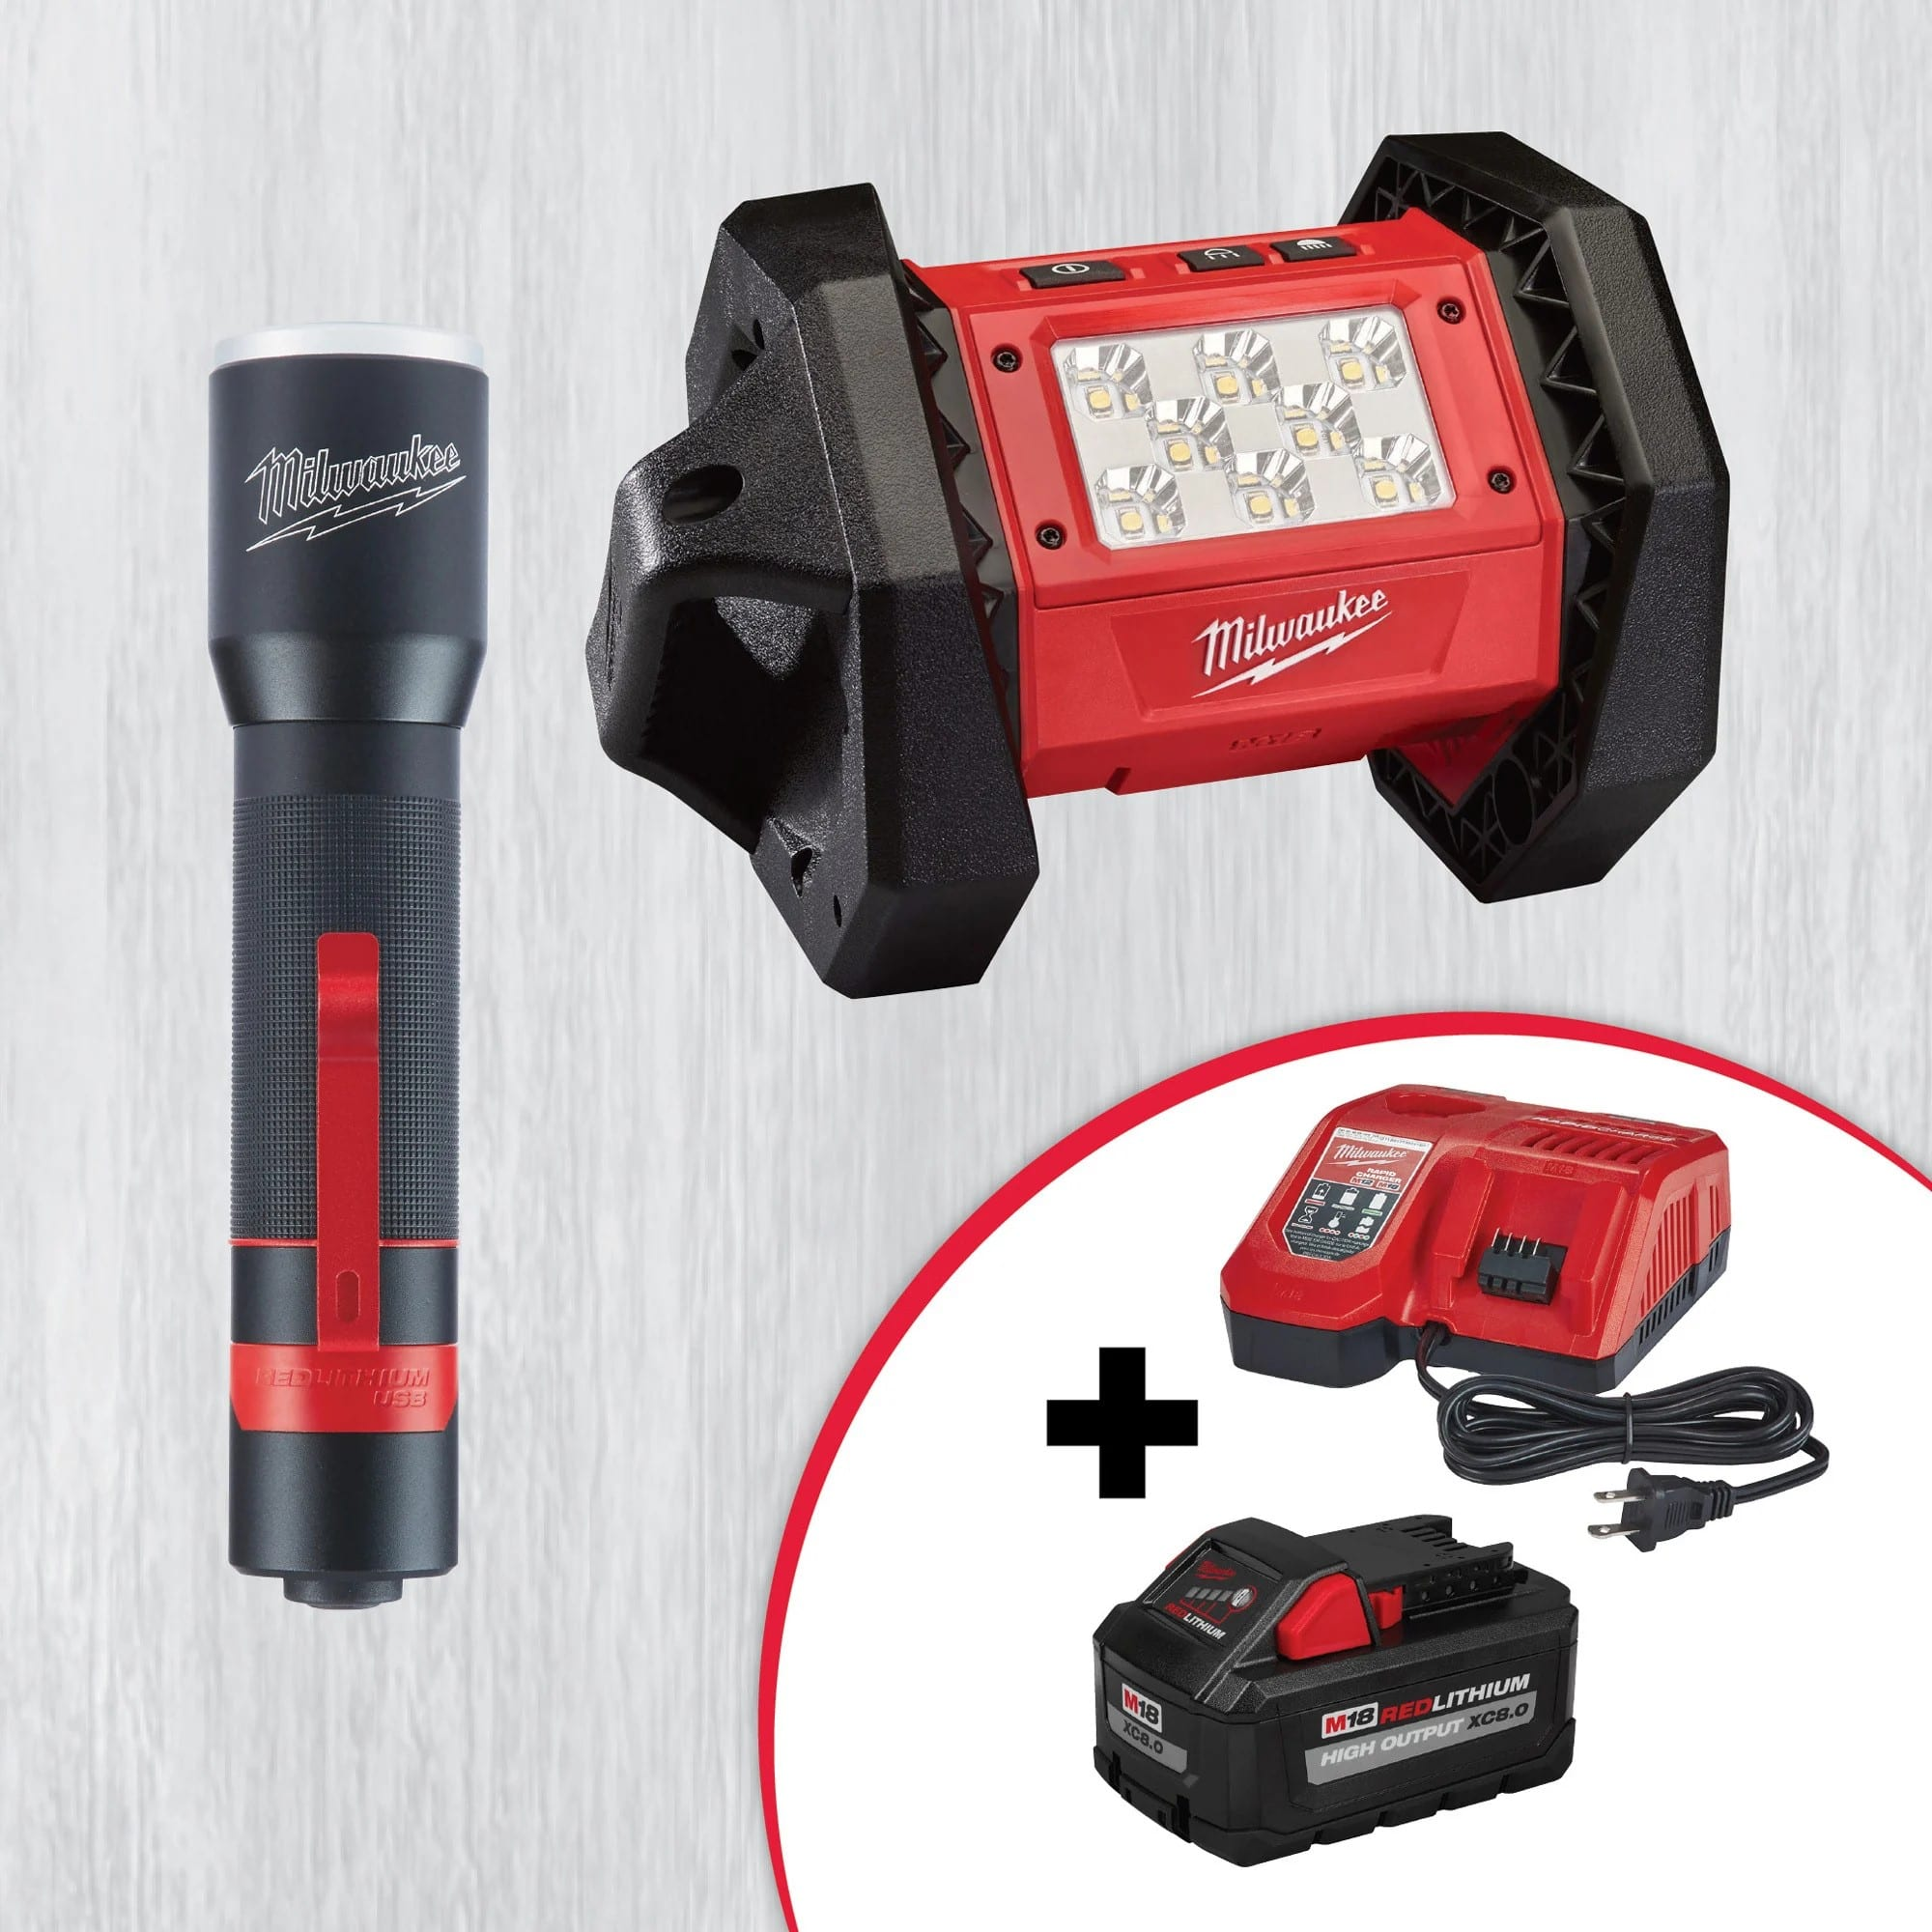 Milwaukee M18 Rover Flood Light and USB Rechargeable 700L Flashlight with FREE M18 8.0ah Battery and Rapid Charger $179